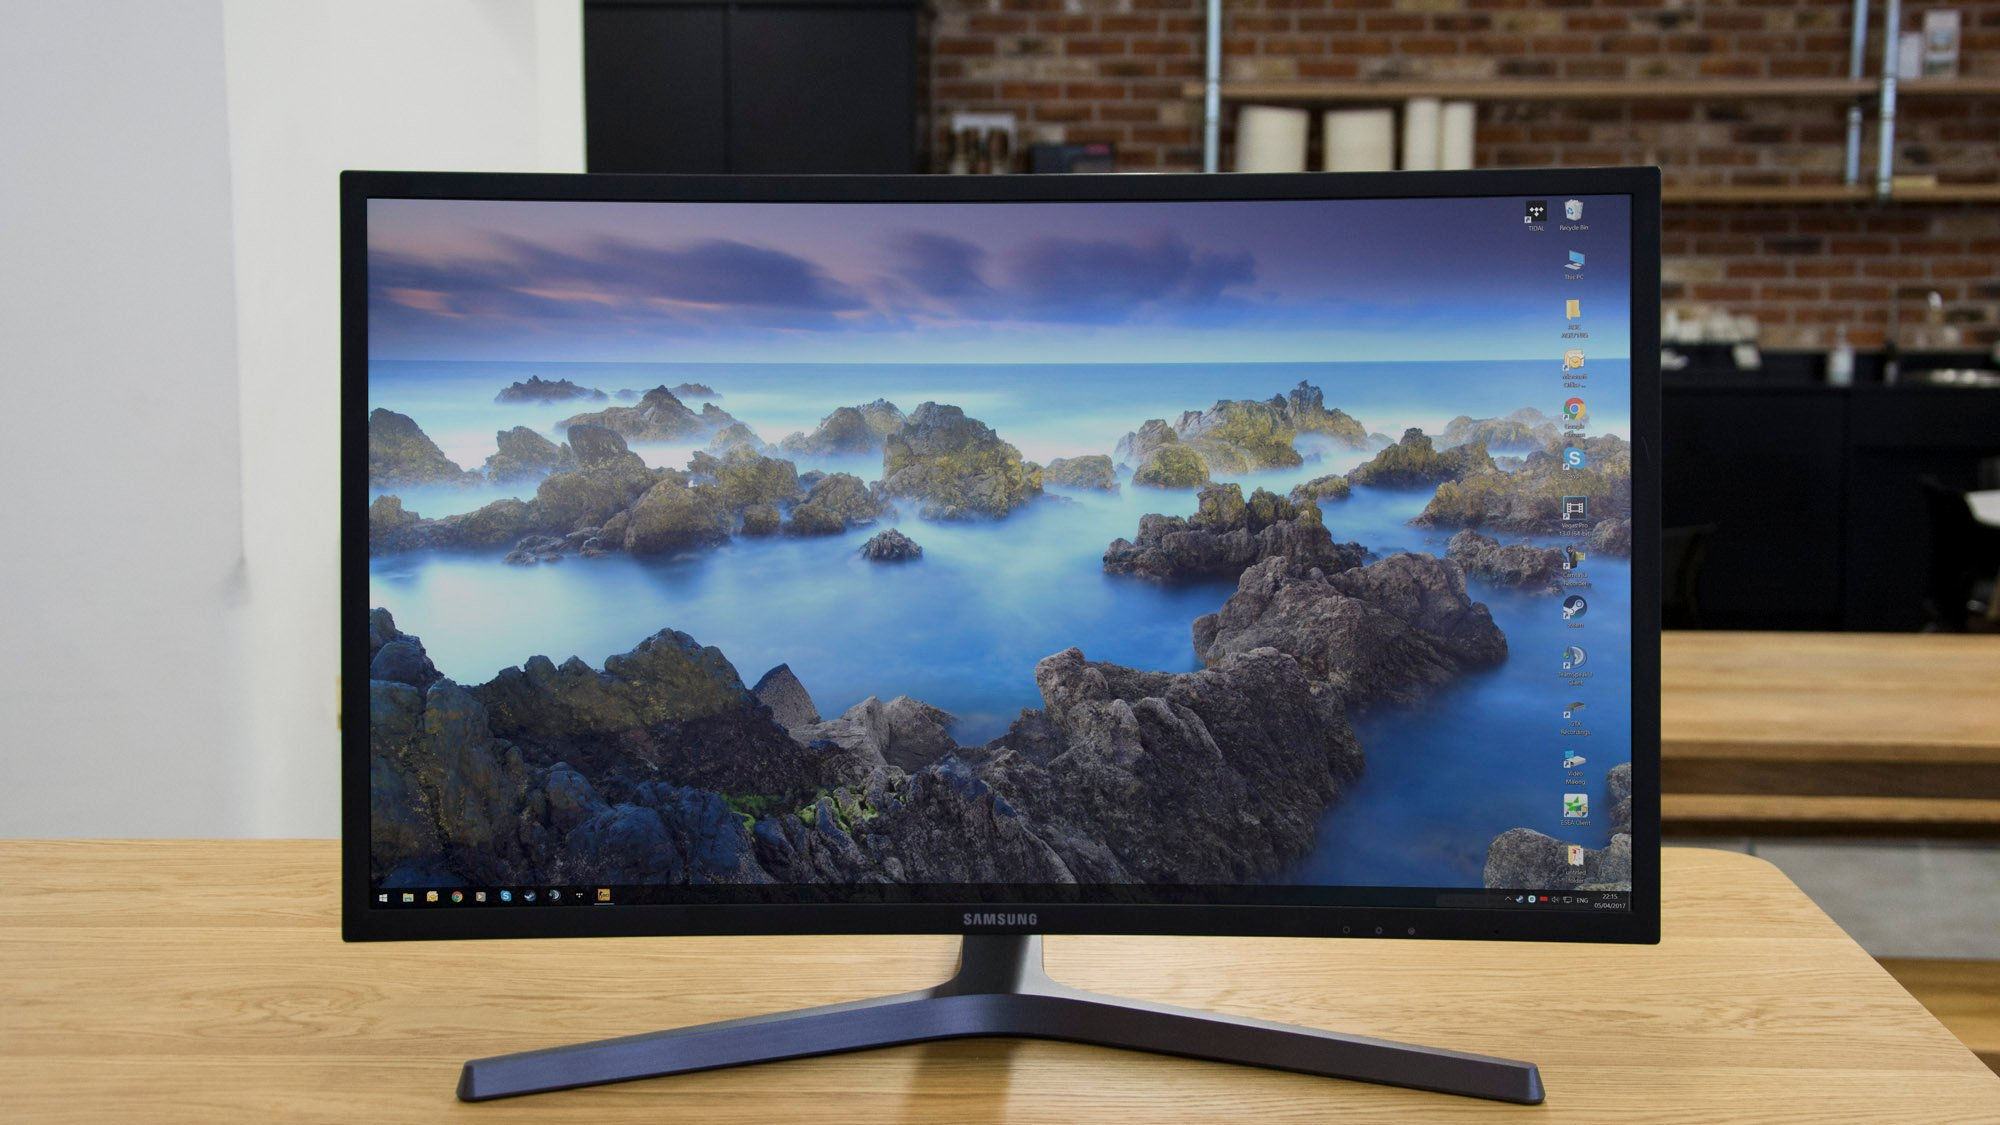 Samsung CHG70 review (C27HG70): The world's first HDR gaming monitor